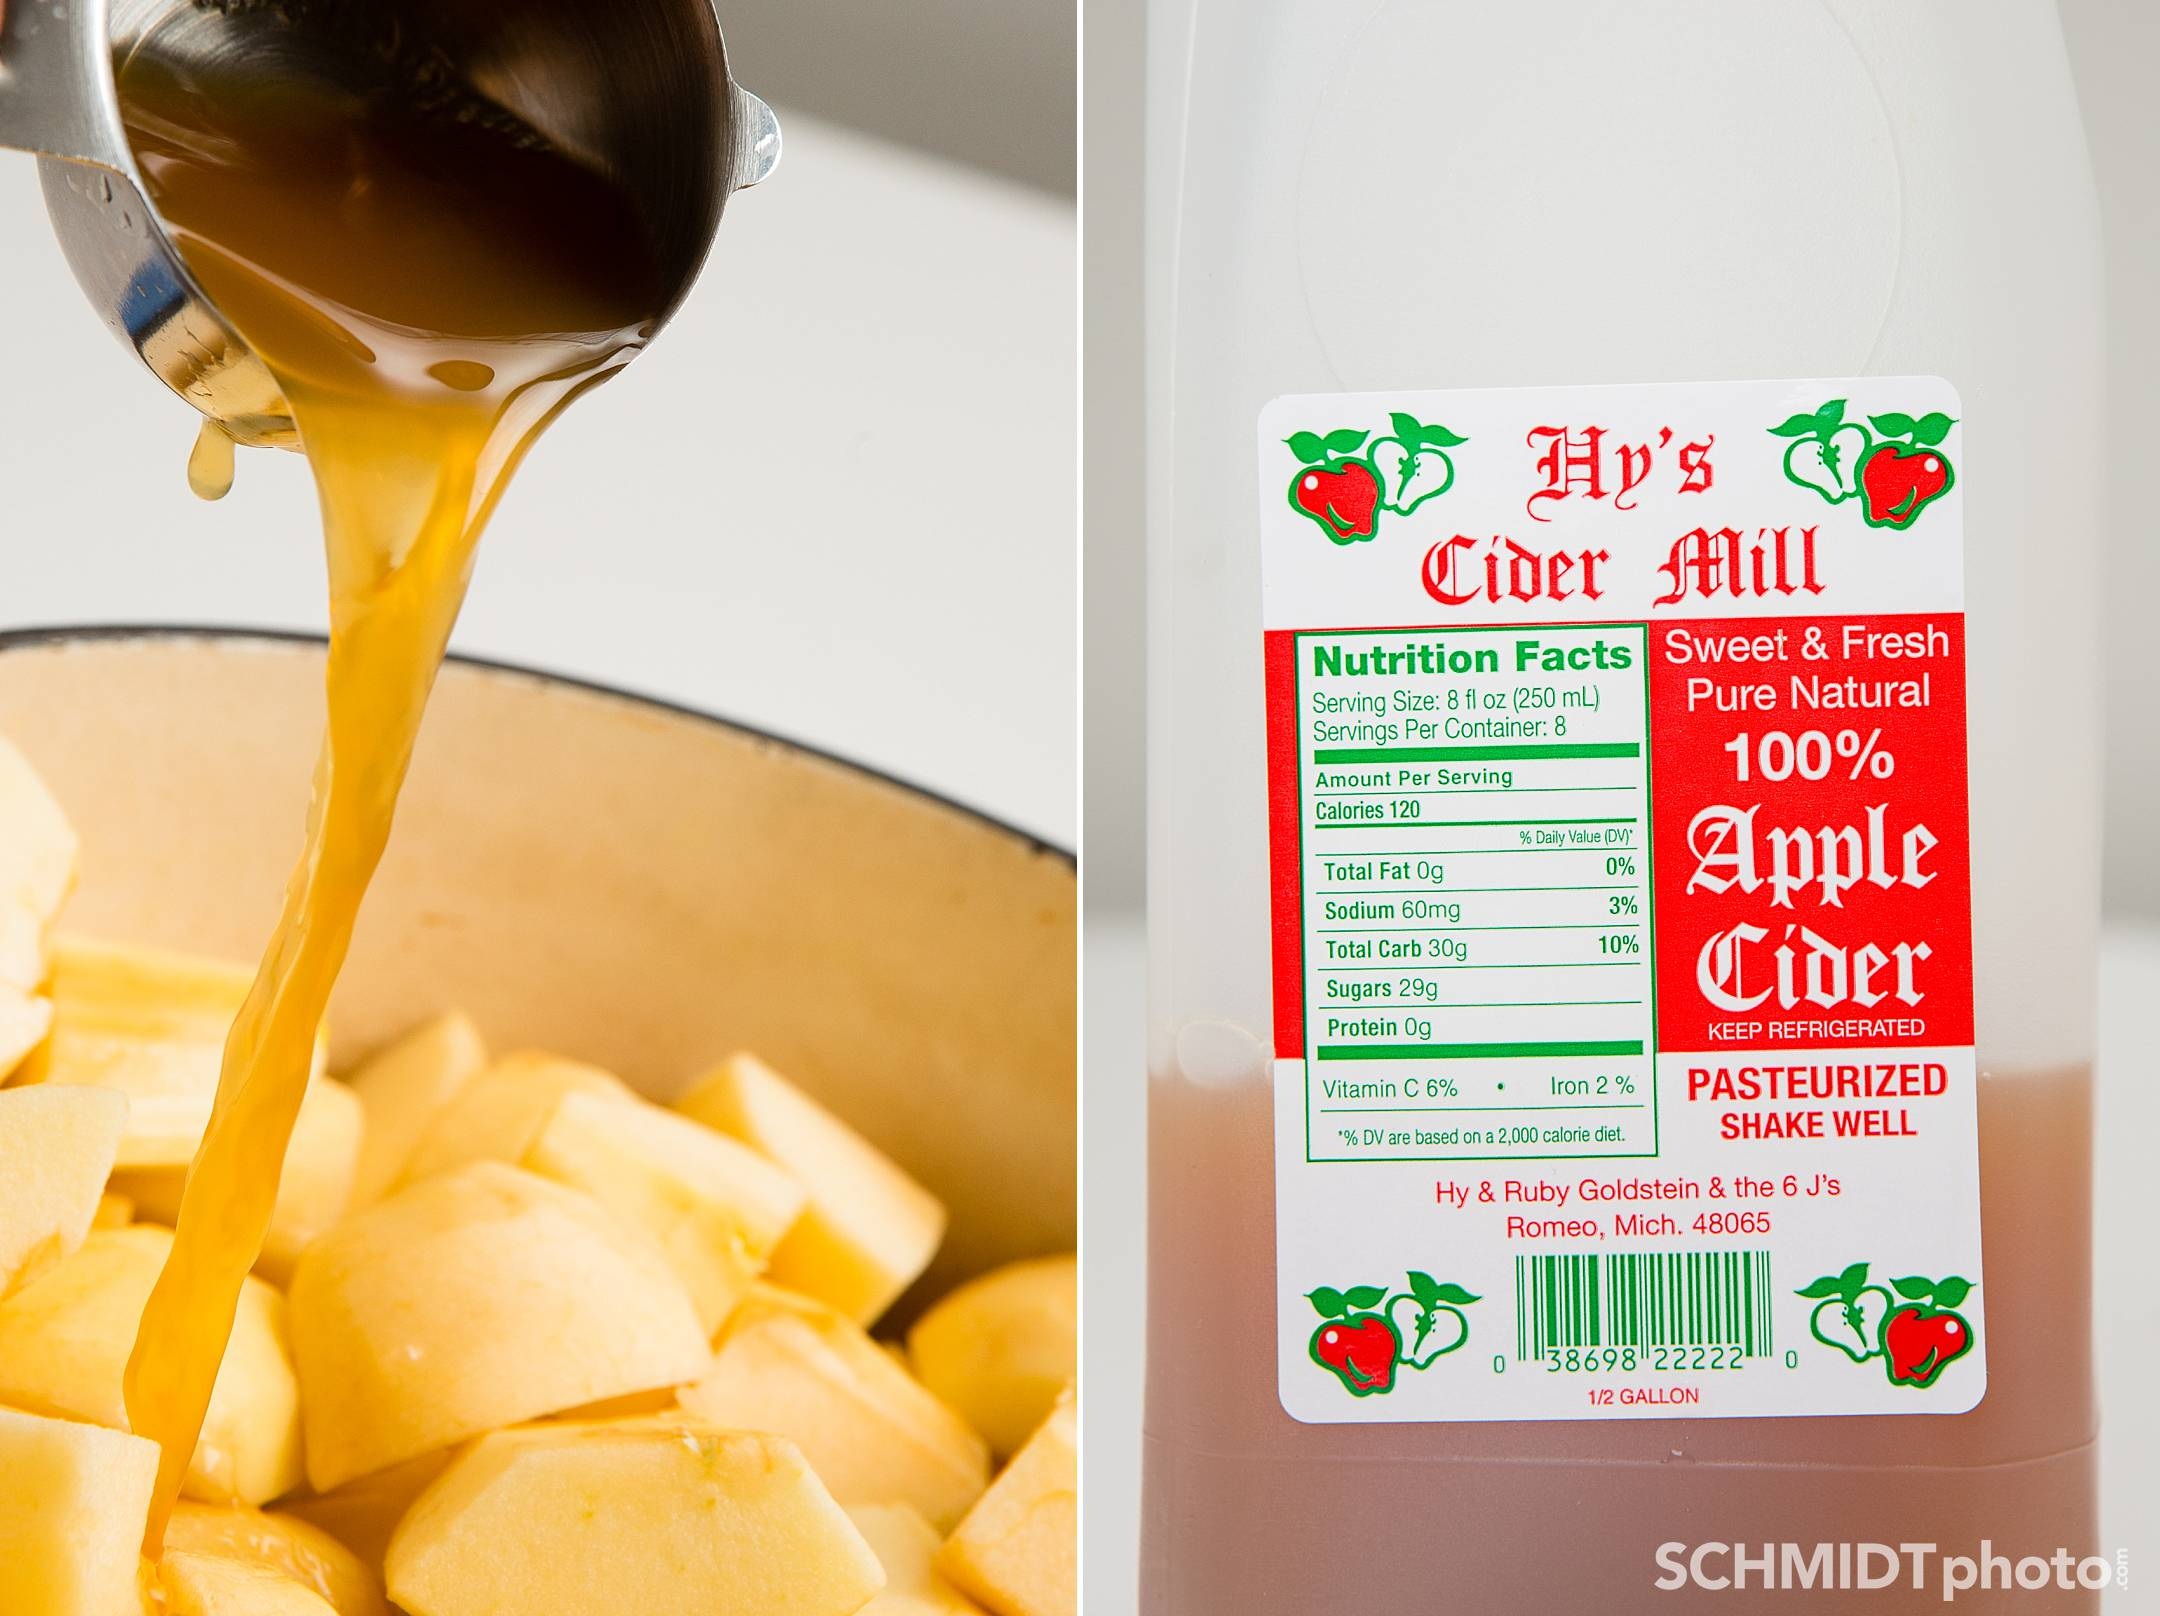 Applesauce with apple cider for flavored recipe